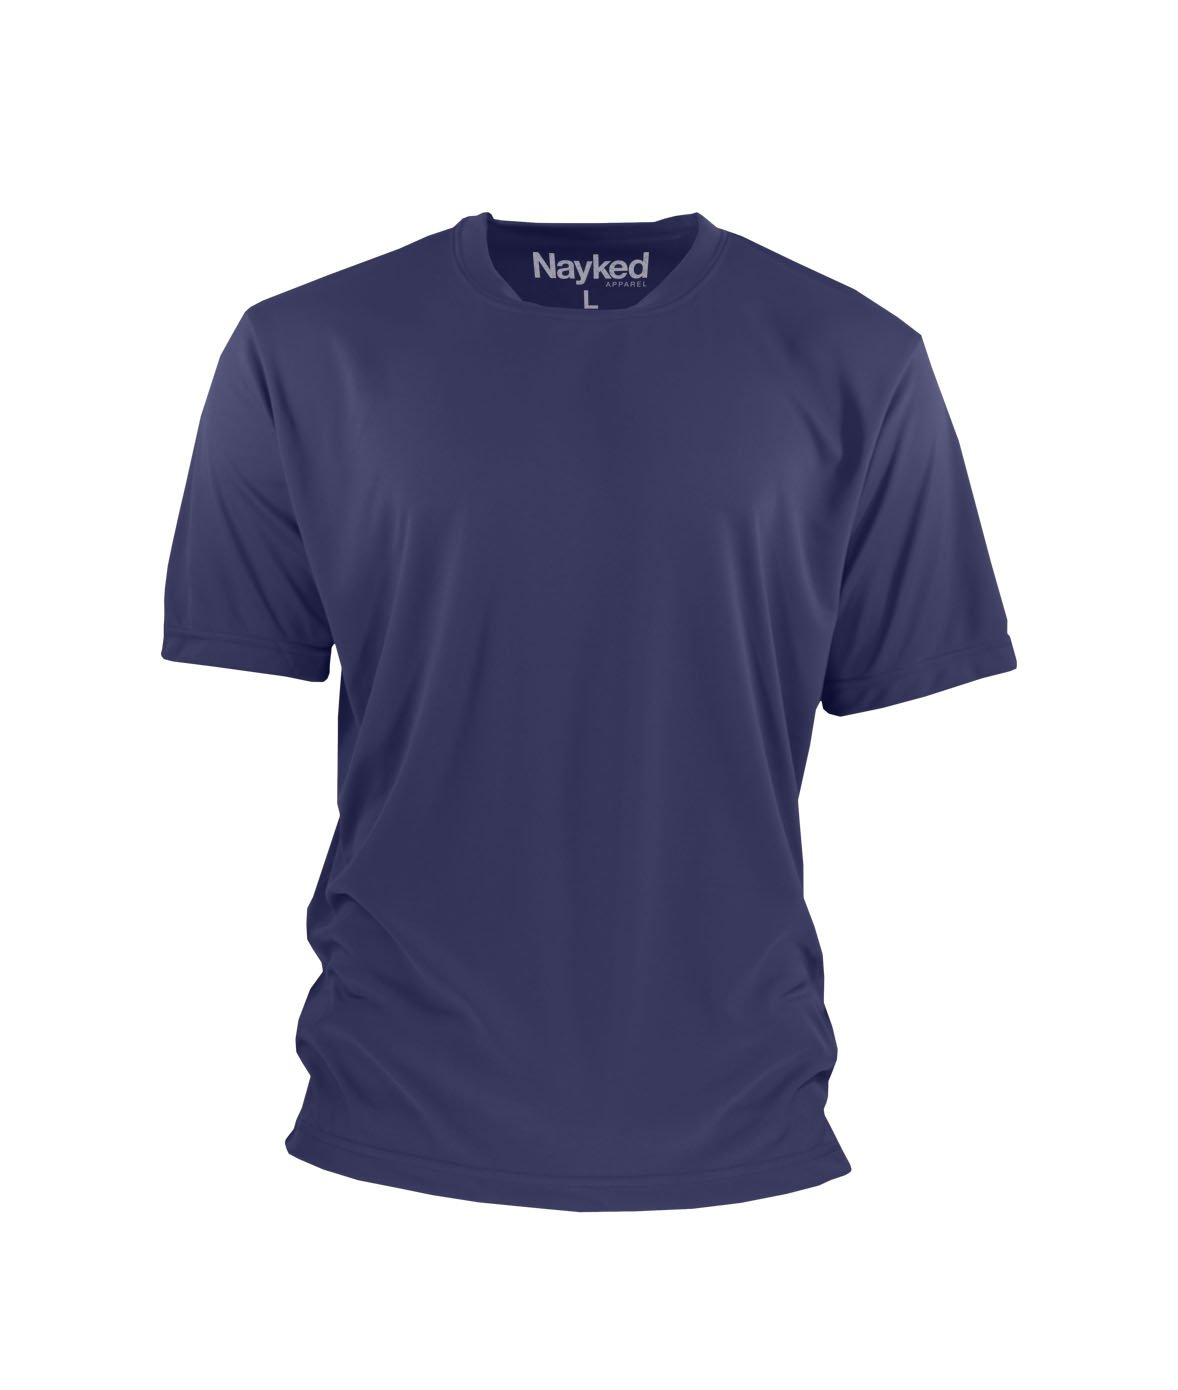 Nayked Apparel Men's Performance Cooling Crew T-Shirt, Navy, 2X-Large